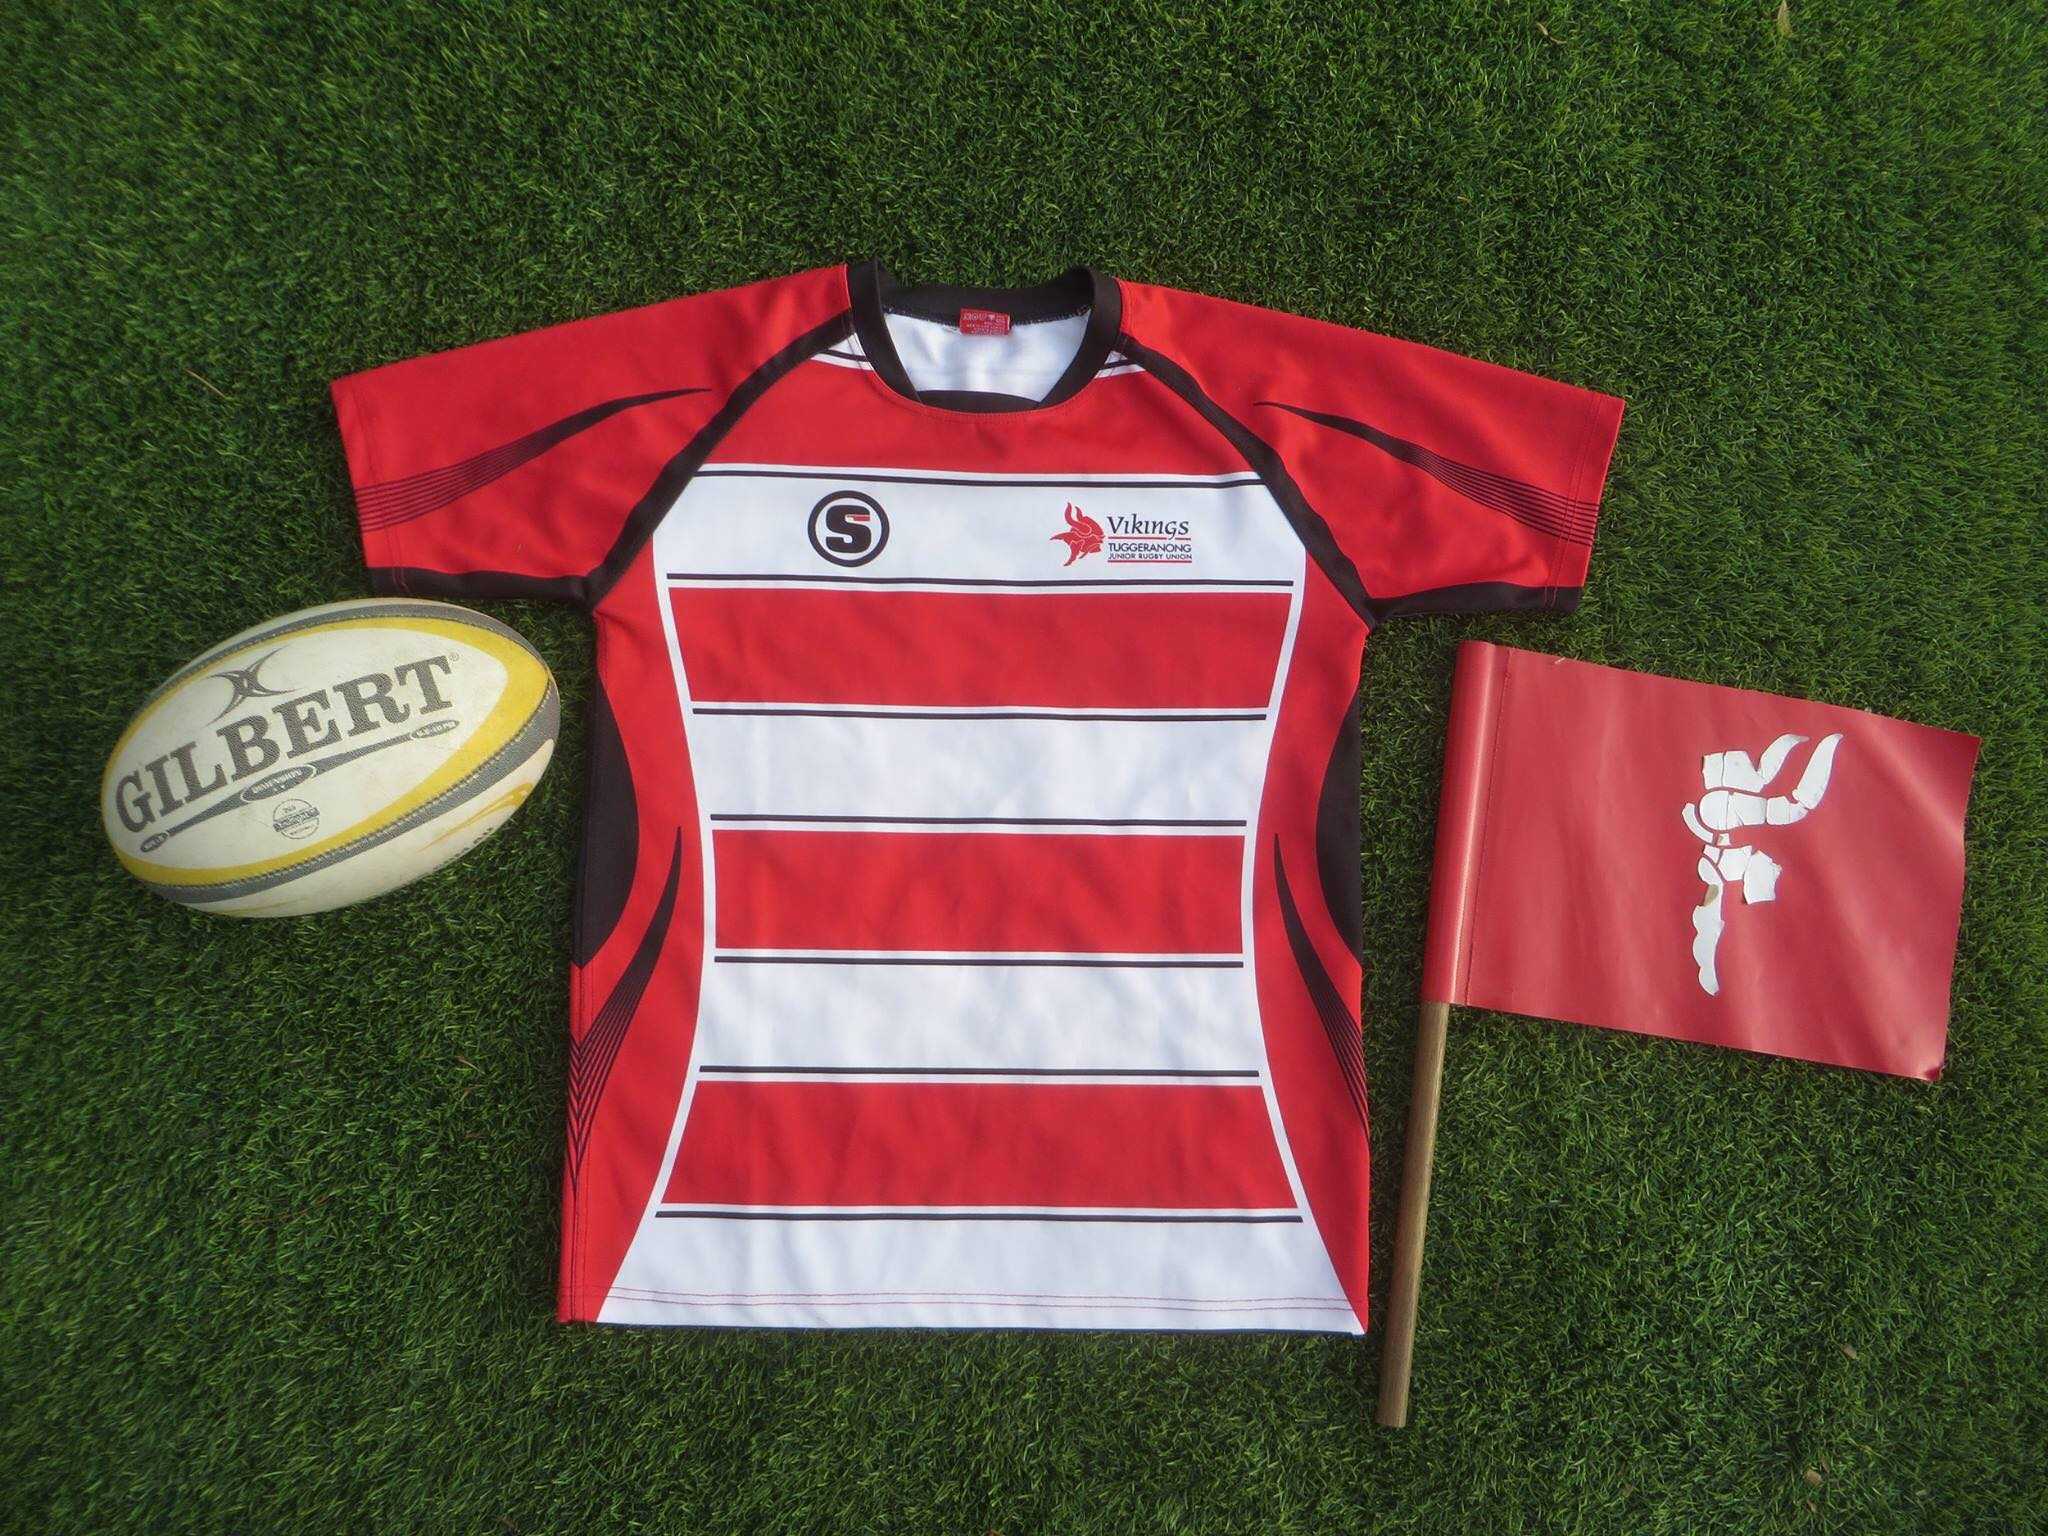 Vikings rugby jersey and ball